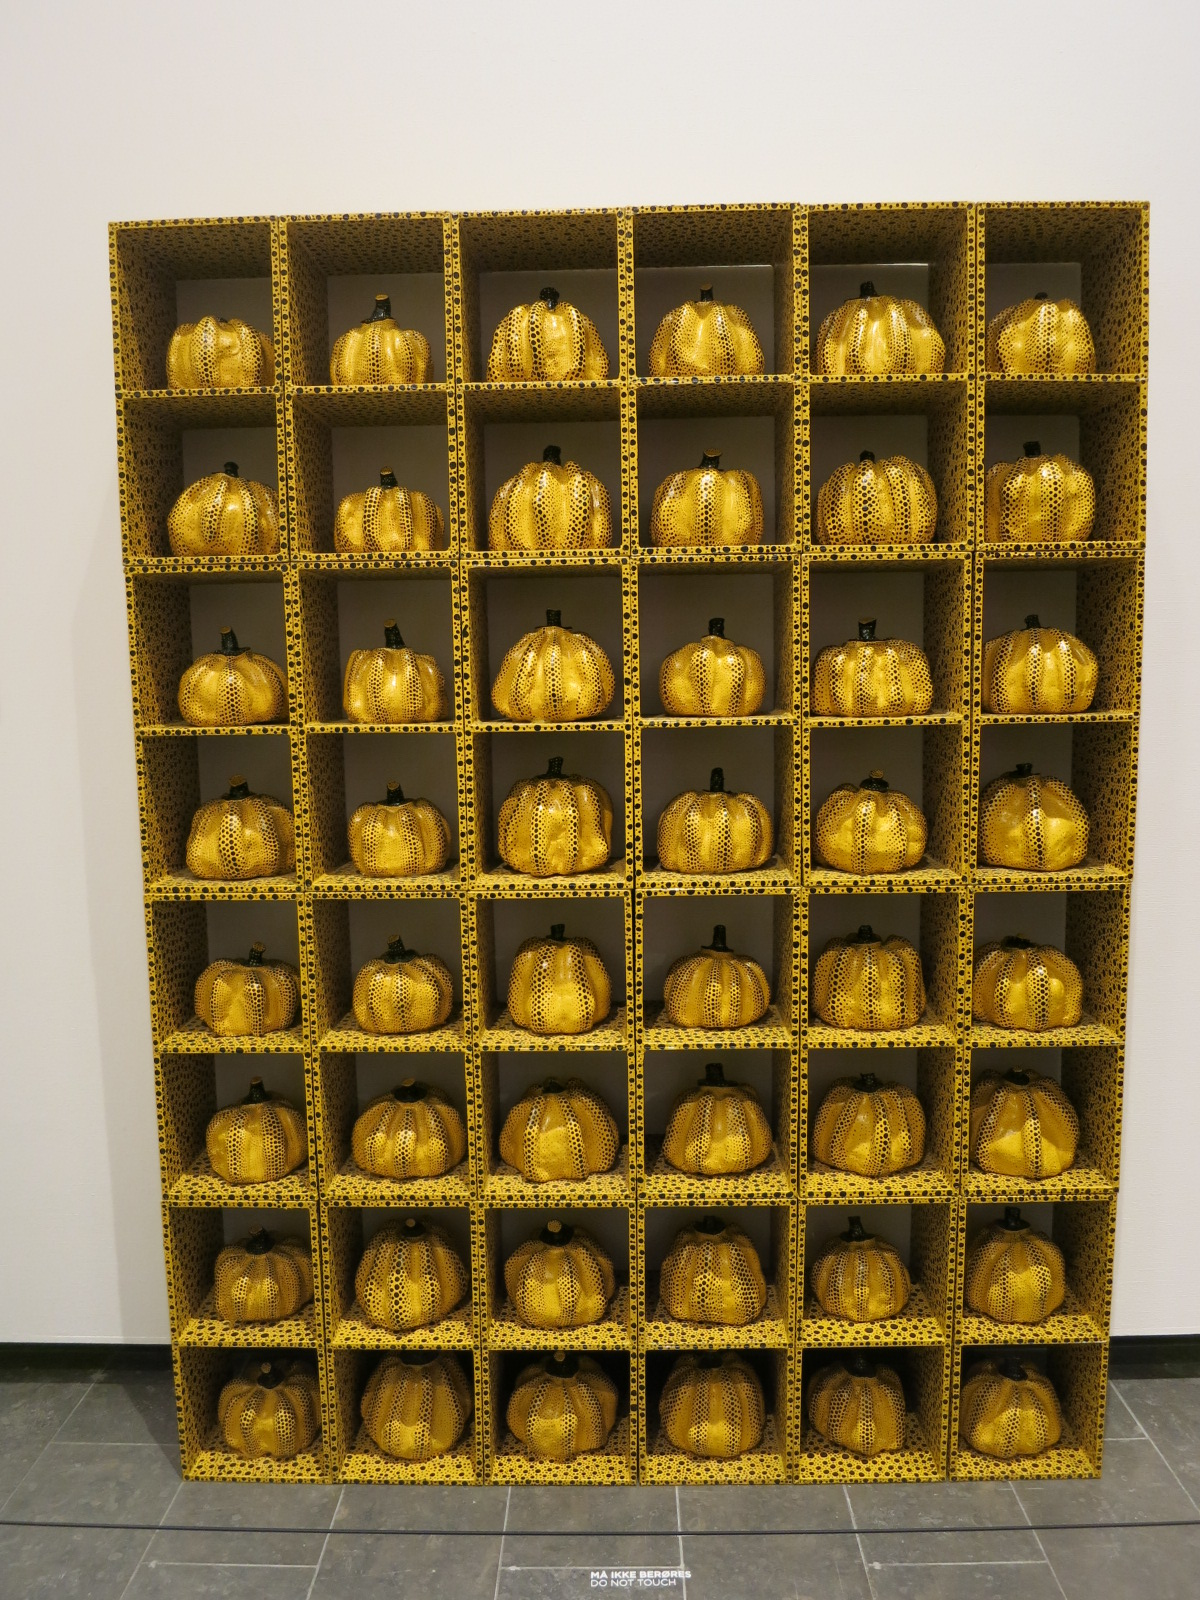 Yayoi Kusama's 1980s works in the In Infinity Retrospective at the Louisiana Museum of Modern Art, Denmark 2015. 'Pumpkin Night' 1985